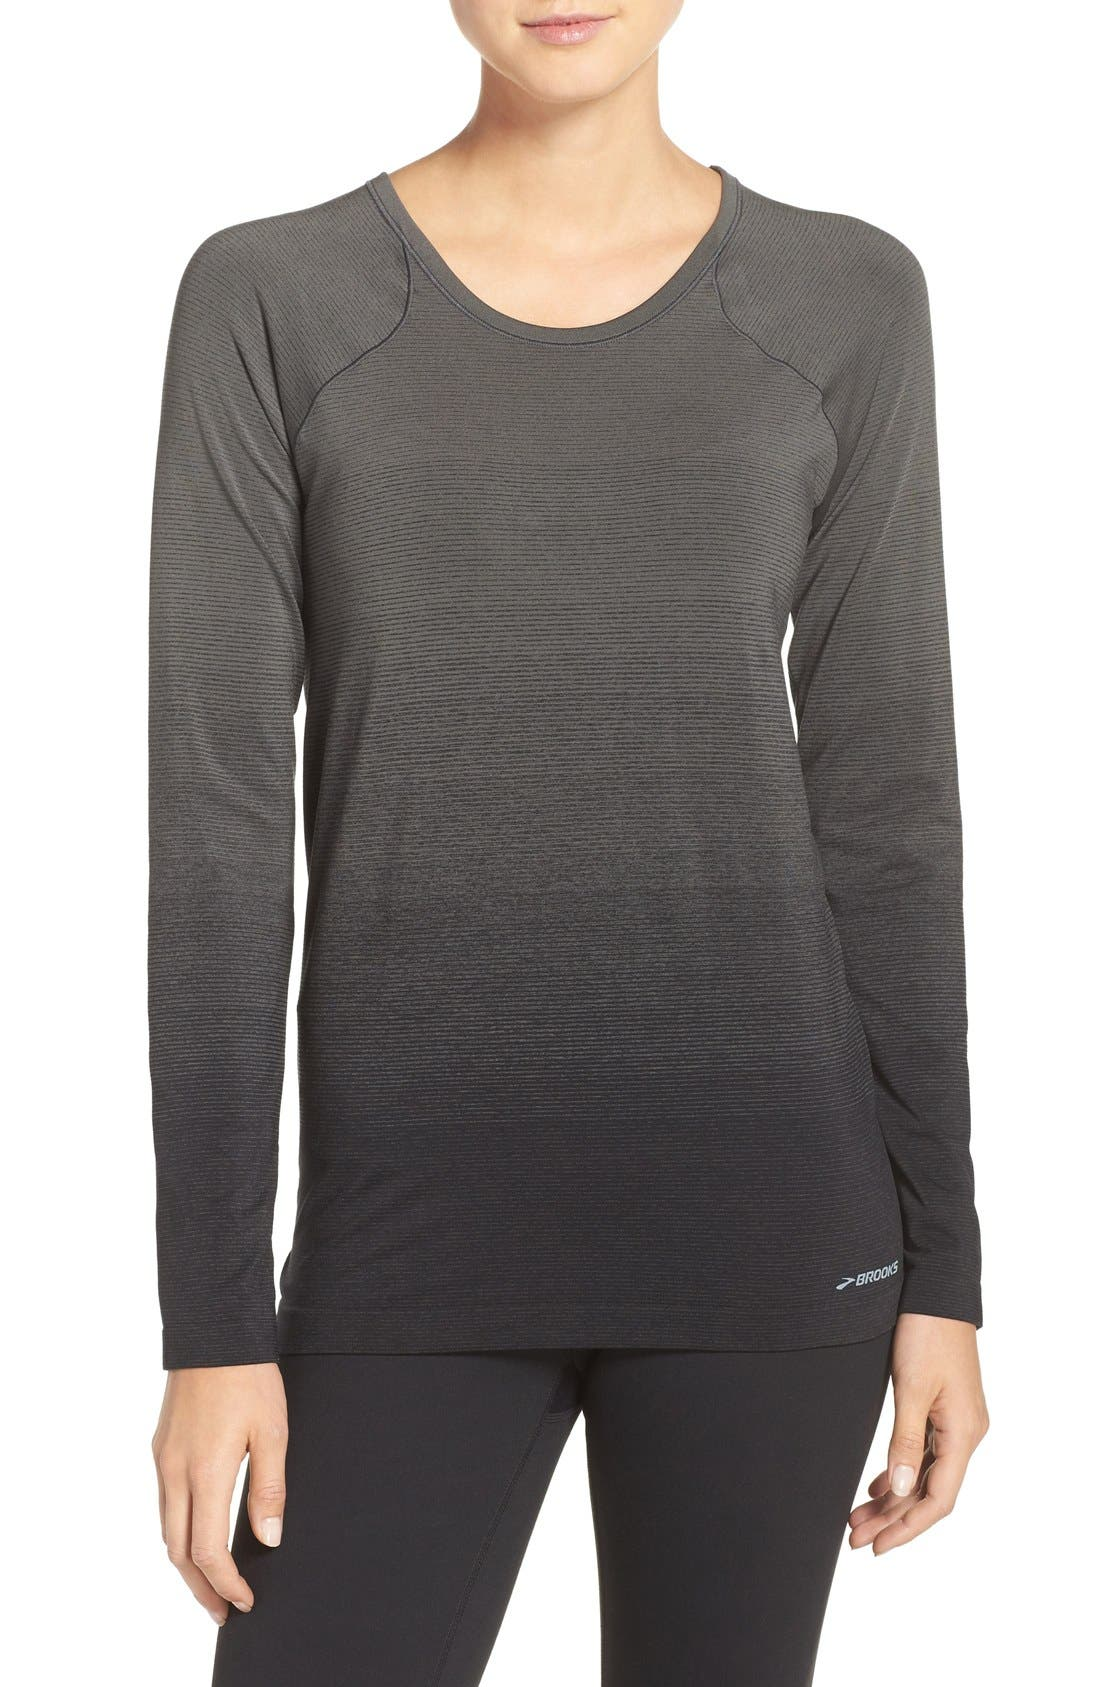 DriLayer Top,                             Main thumbnail 1, color,                             Black/ Oxford